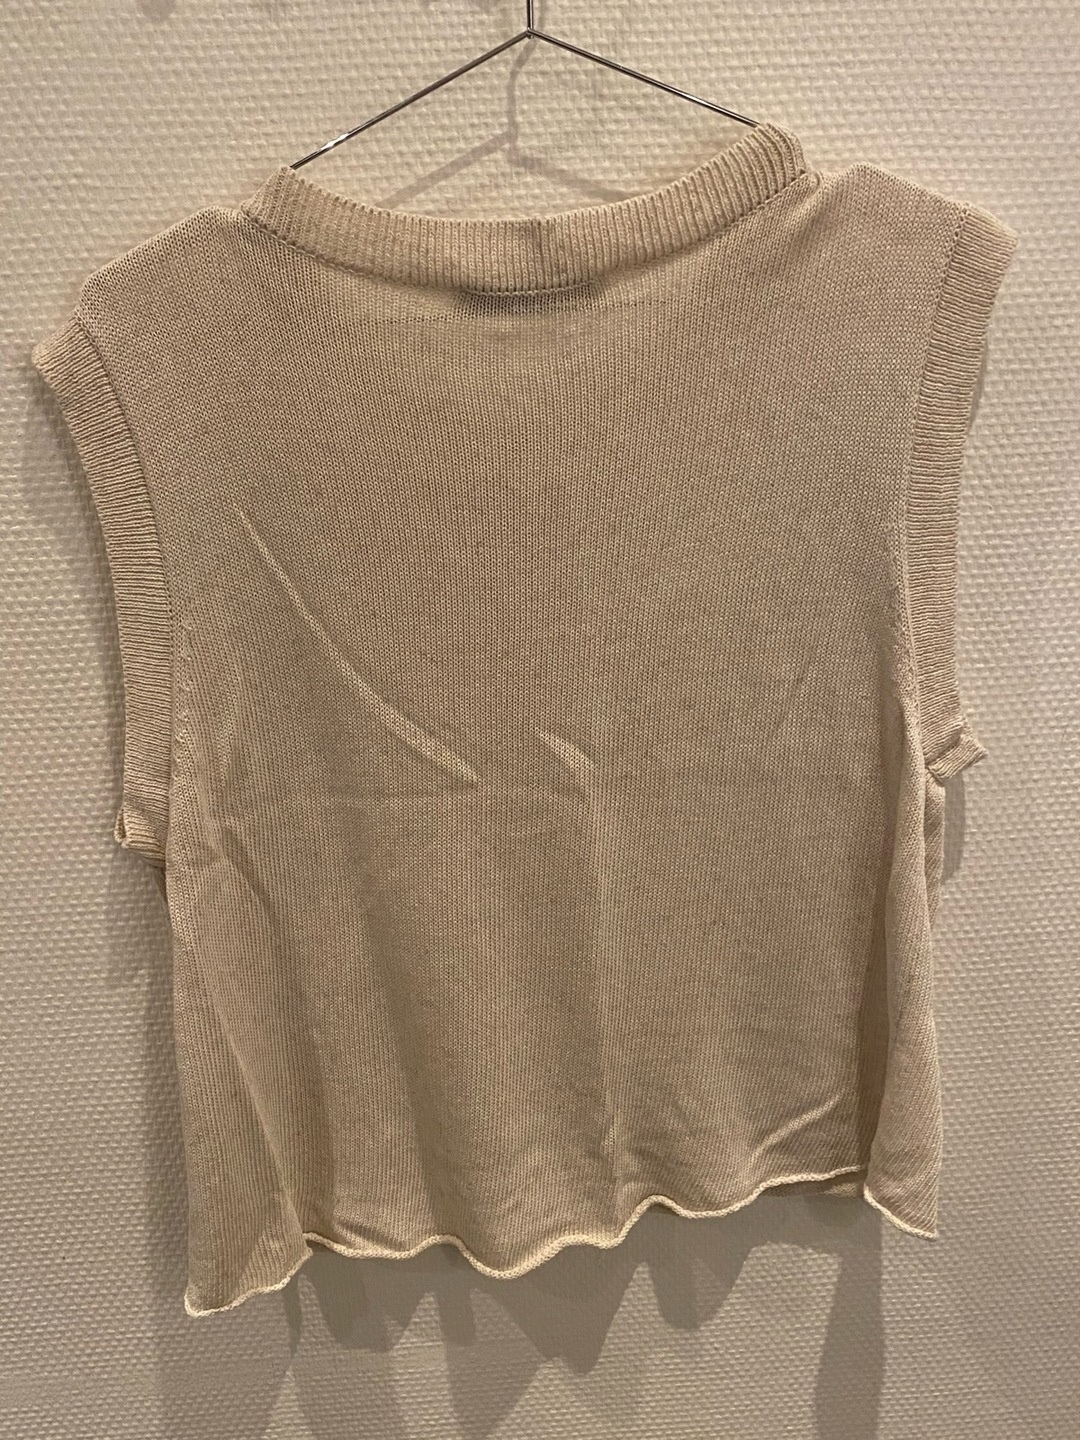 Damers toppe og t-shirts - ZARA photo 2